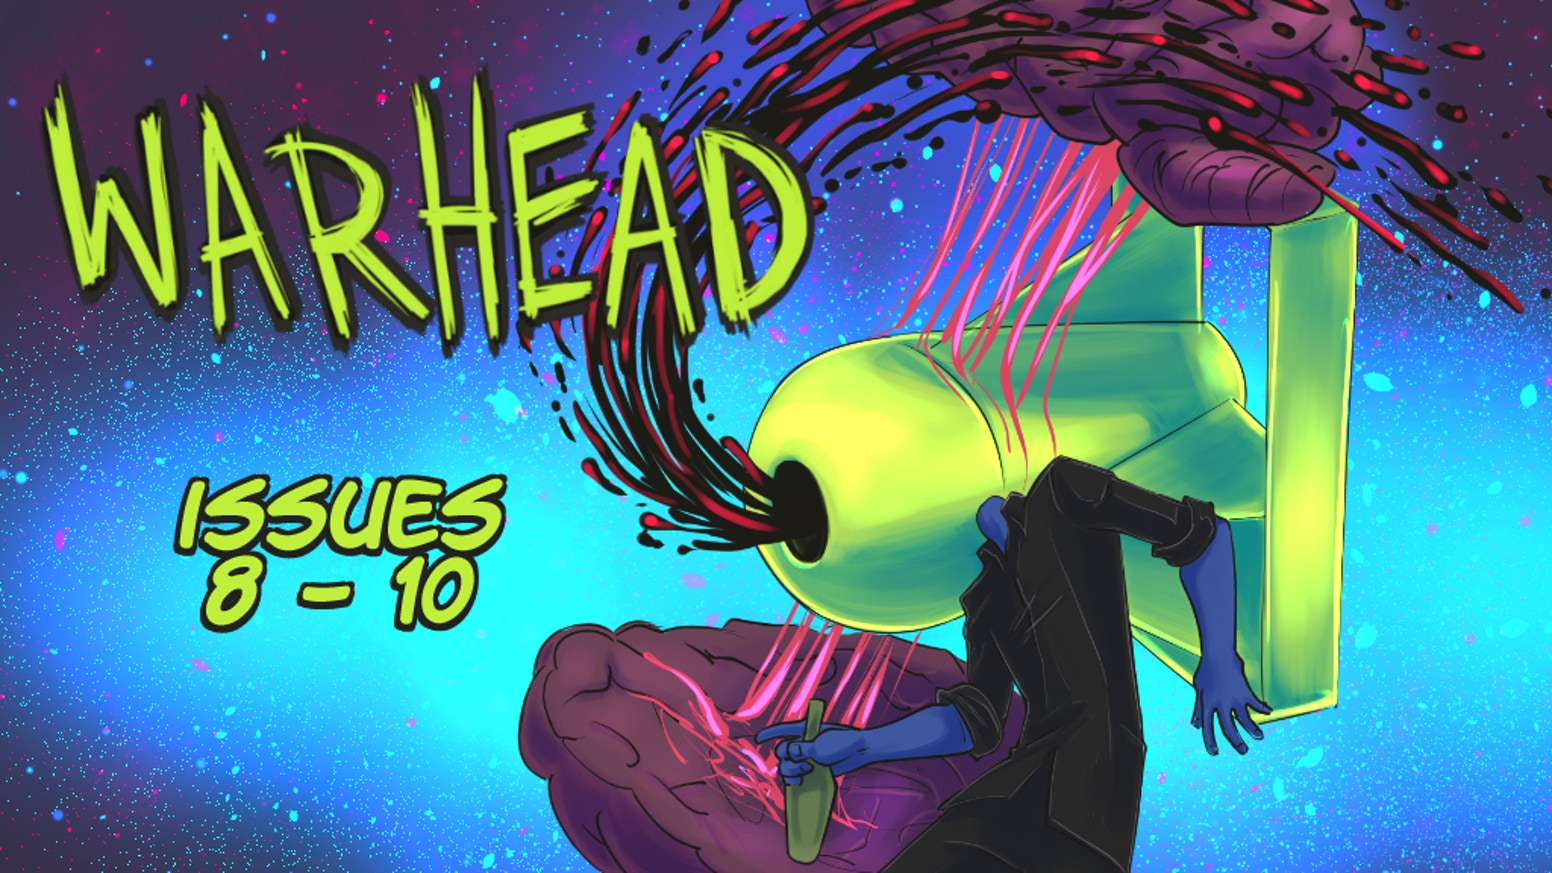 WARHEAD Issues 8, 9 & 10!